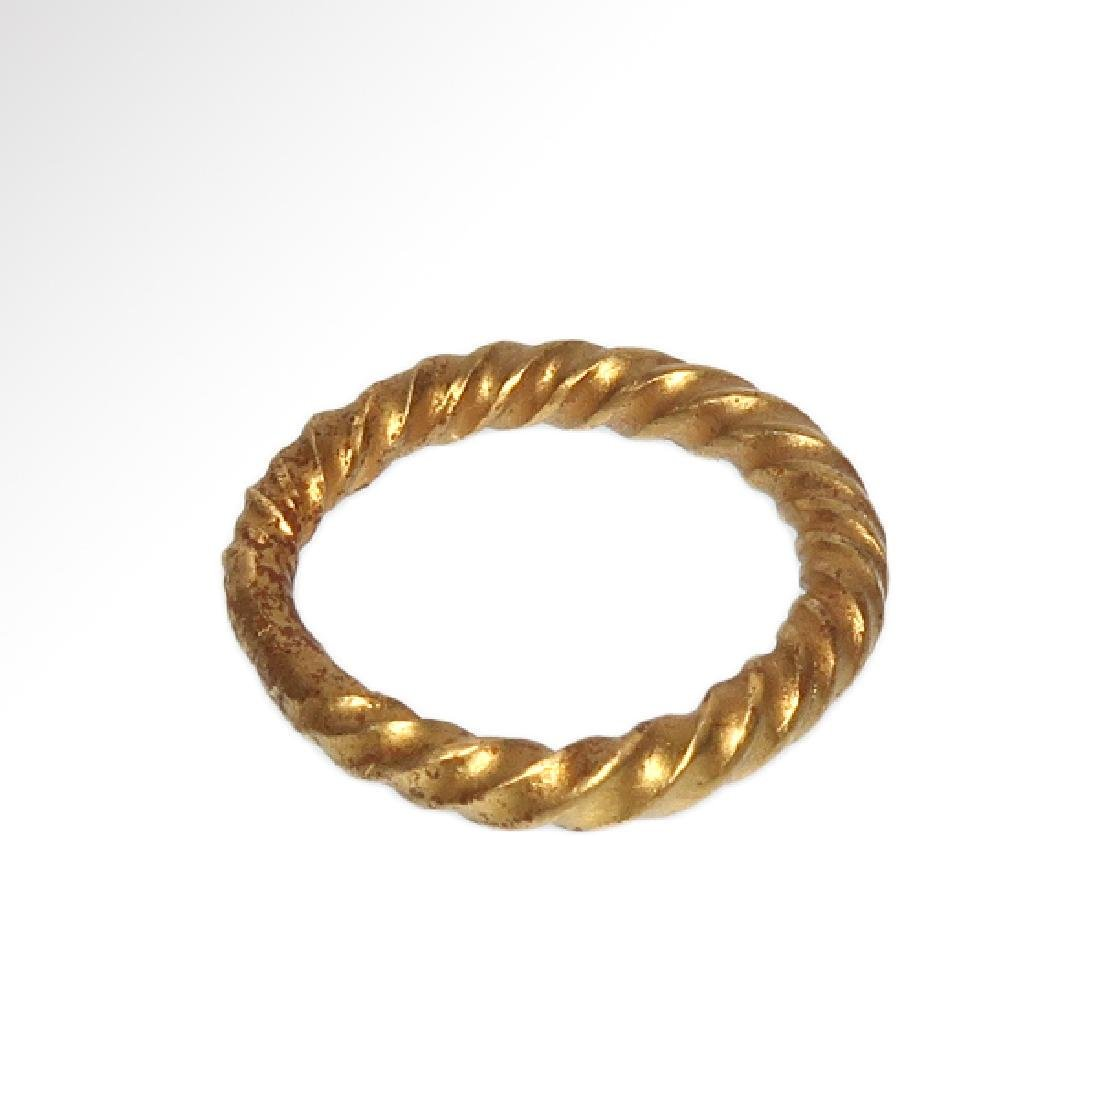 Viking Solid Gold Ring, c. 10th Century A.D. - 6